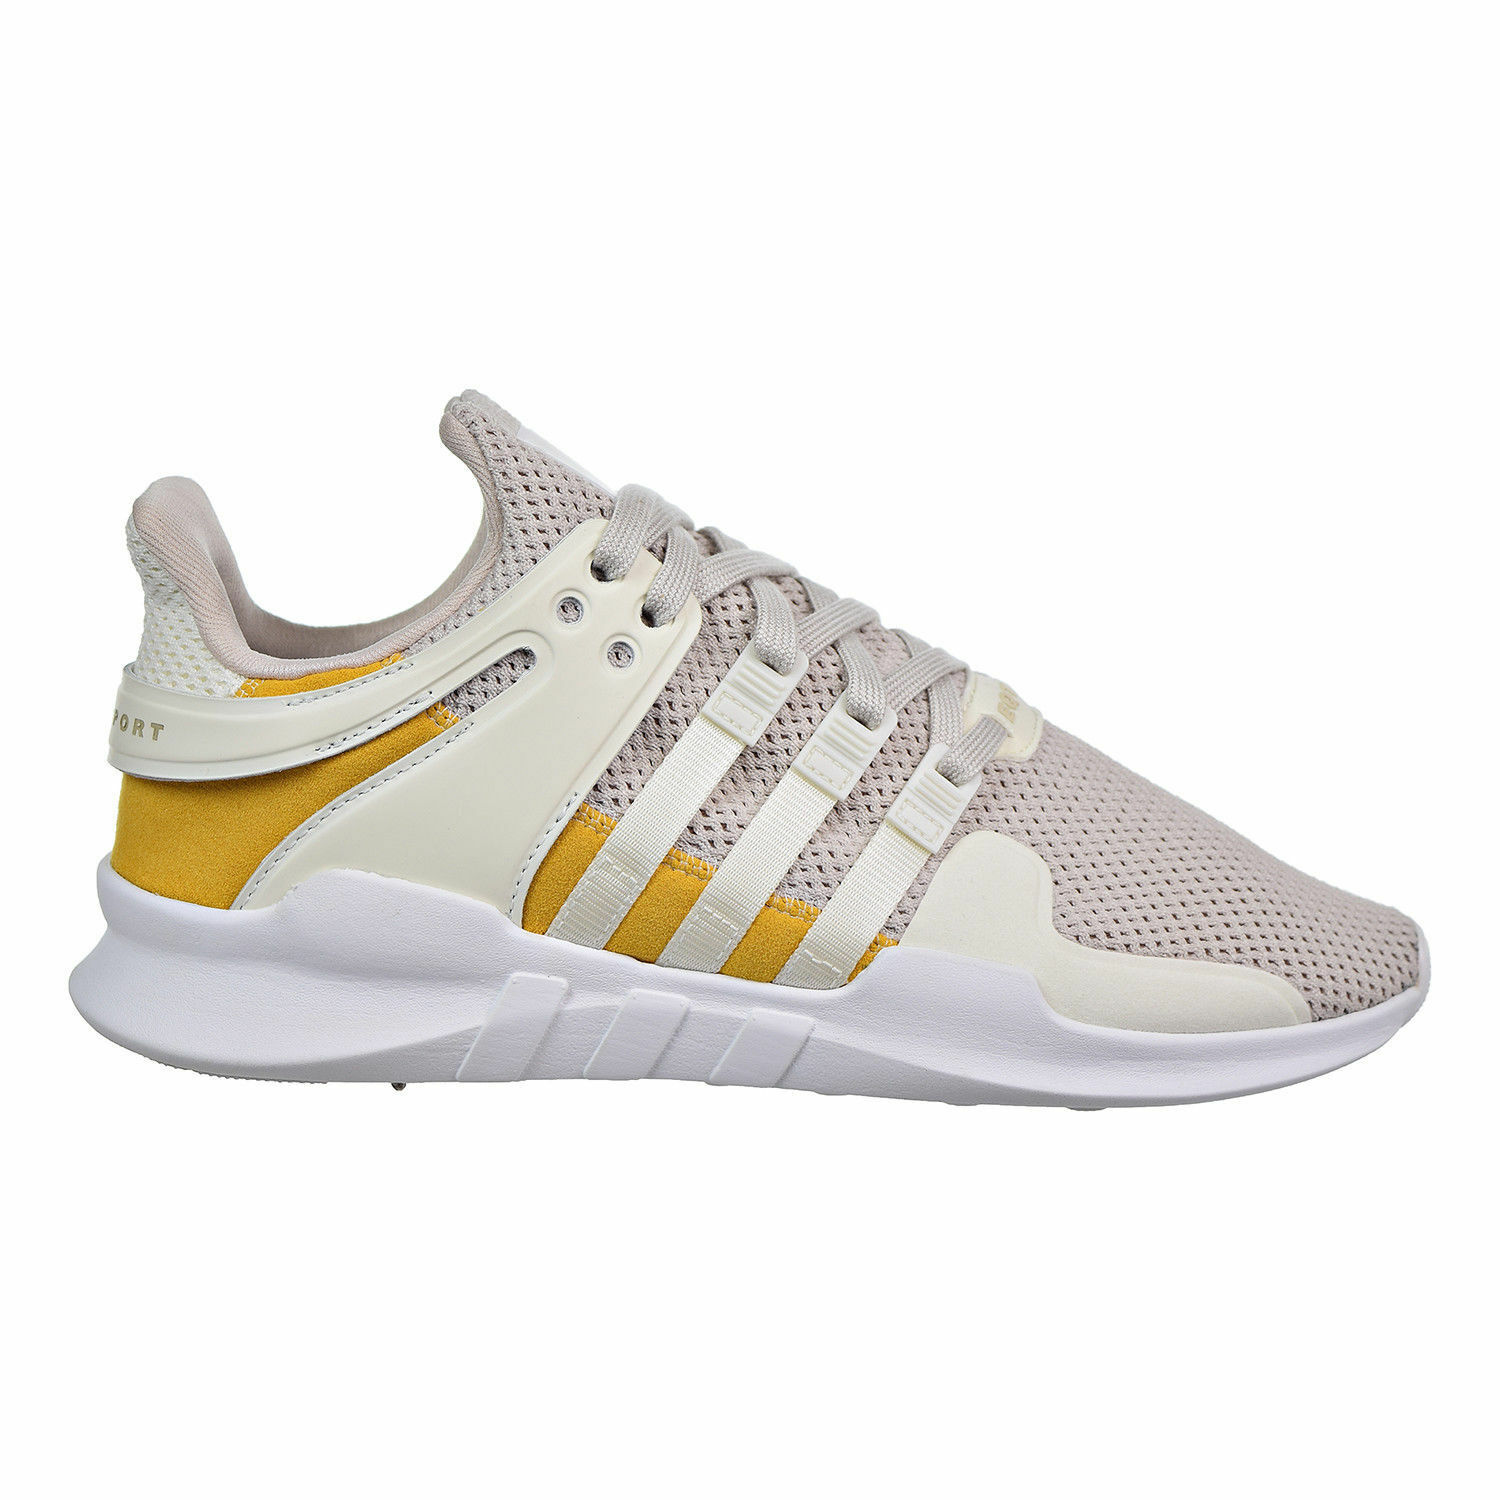 0a239c58182e Adidas EQT Support ADV Off White Tactile Yellow Mens shoes AC7141 ...